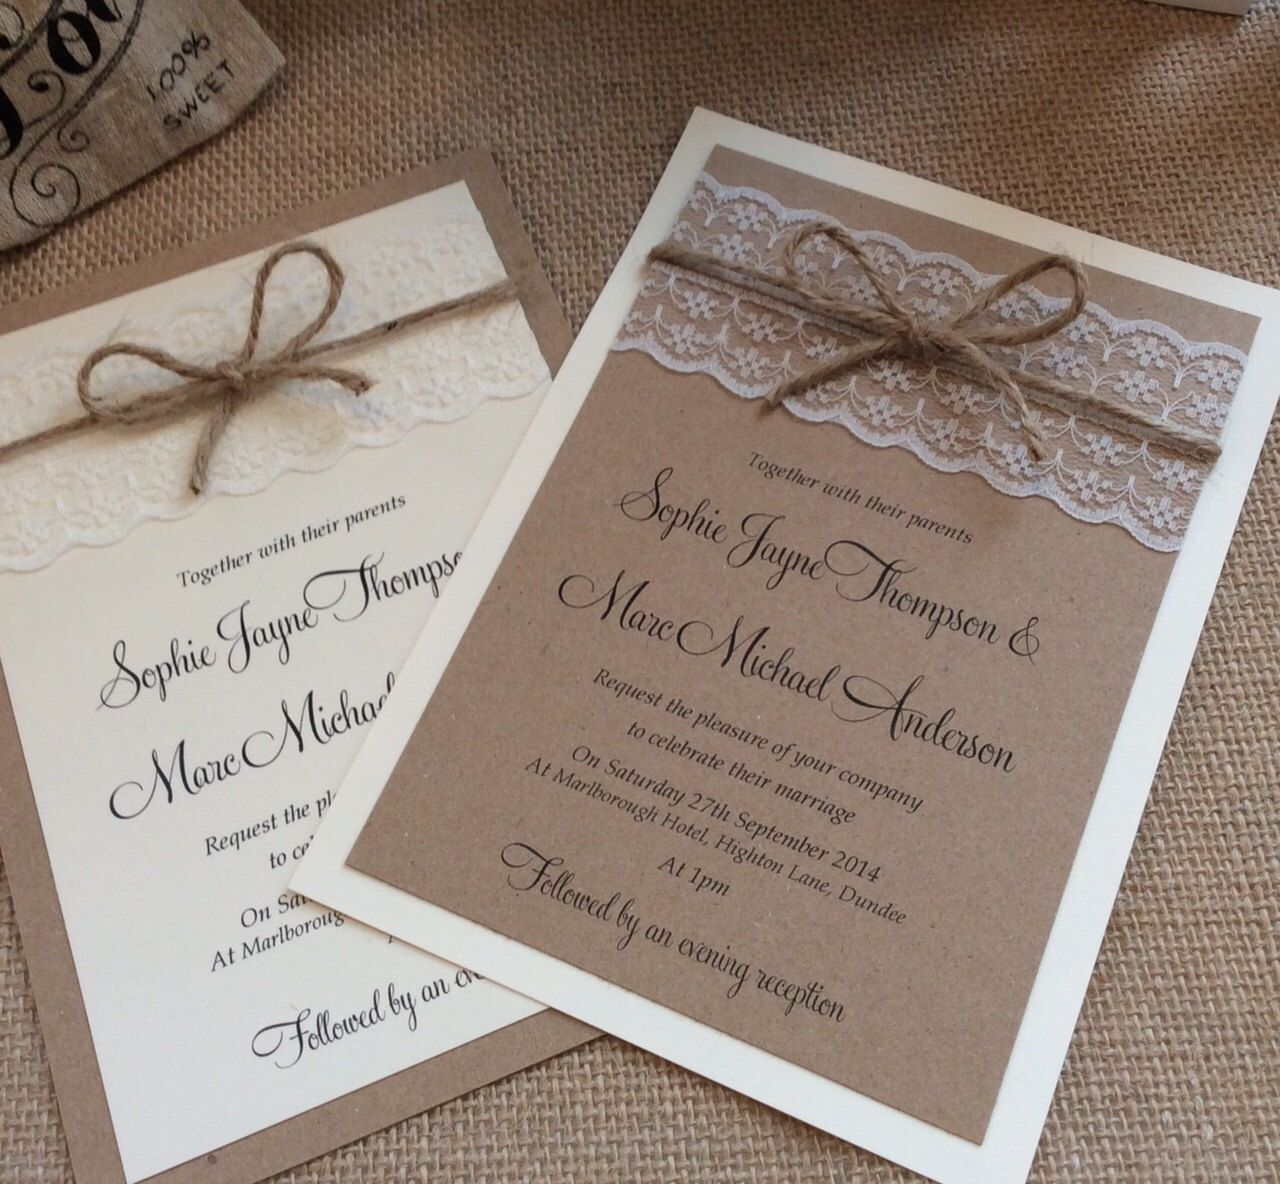 diy rustic wedding invitations burlap%0A Lace Wedding Save the Date Save the Dates Rustic by LoveofCreating    Laundry   Pinterest   Wedding  Vintage lace weddings and Wedding vintage